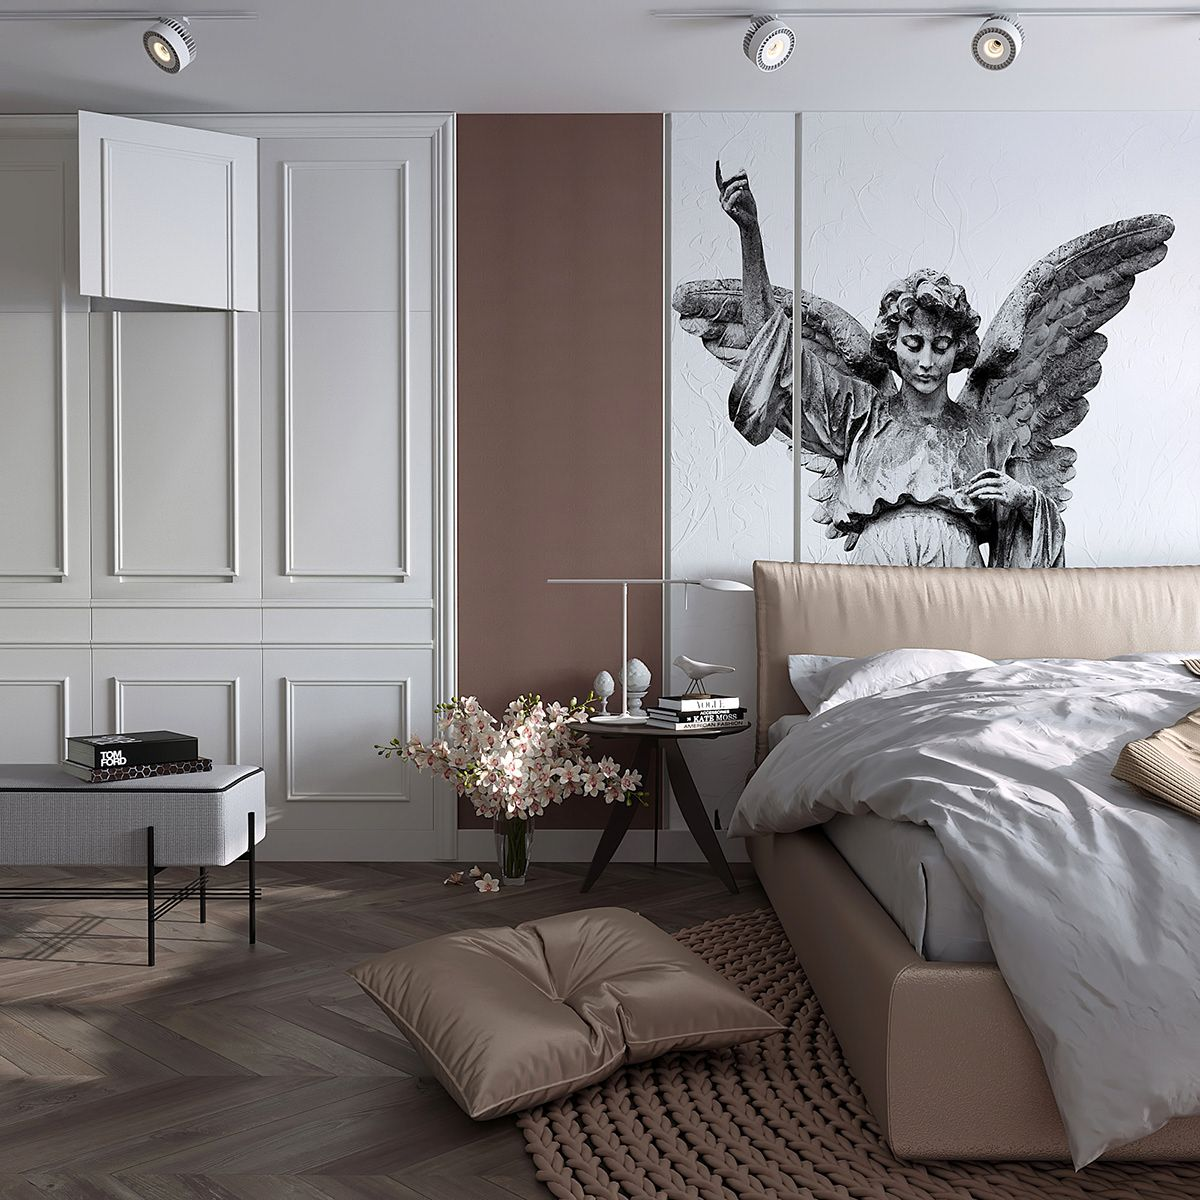 Bedroom In Contemporary Style On Behance: Feminine Bedroom Design Concept On Behance